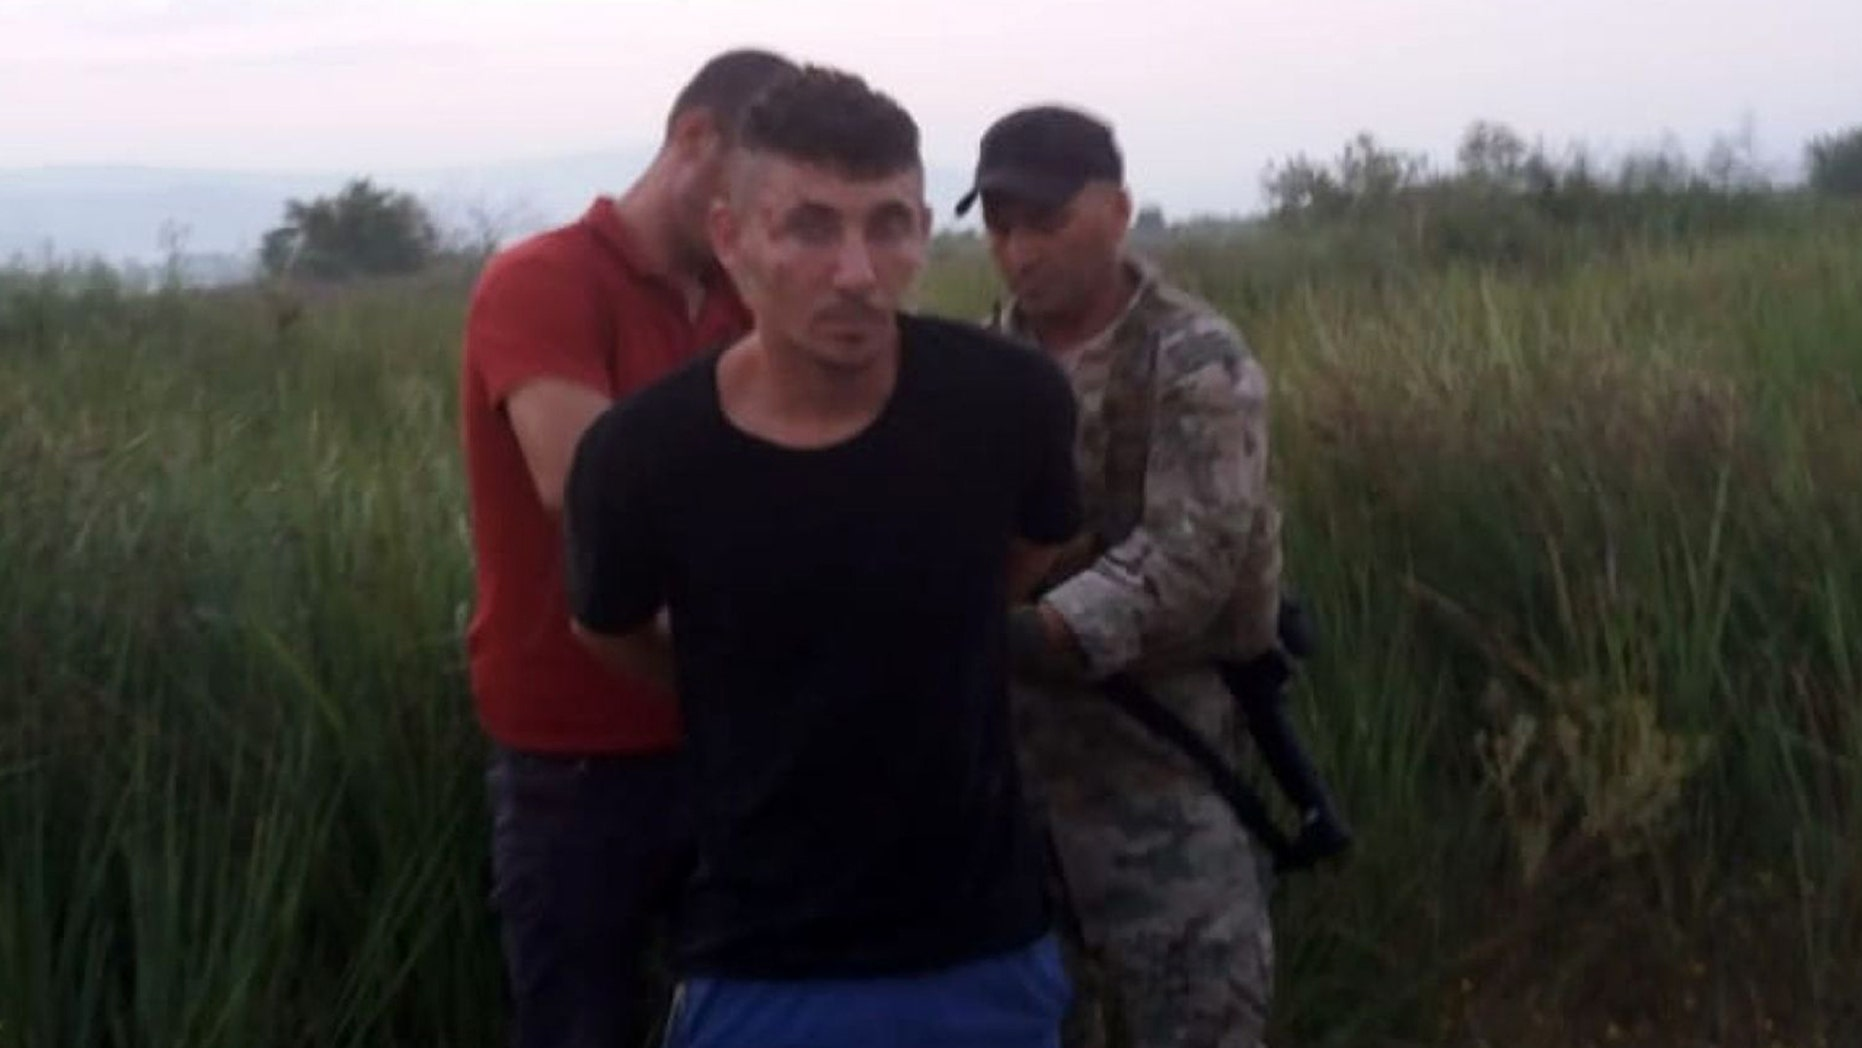 Ridvan Zykaj was arrested after a 12-hour manhunt.